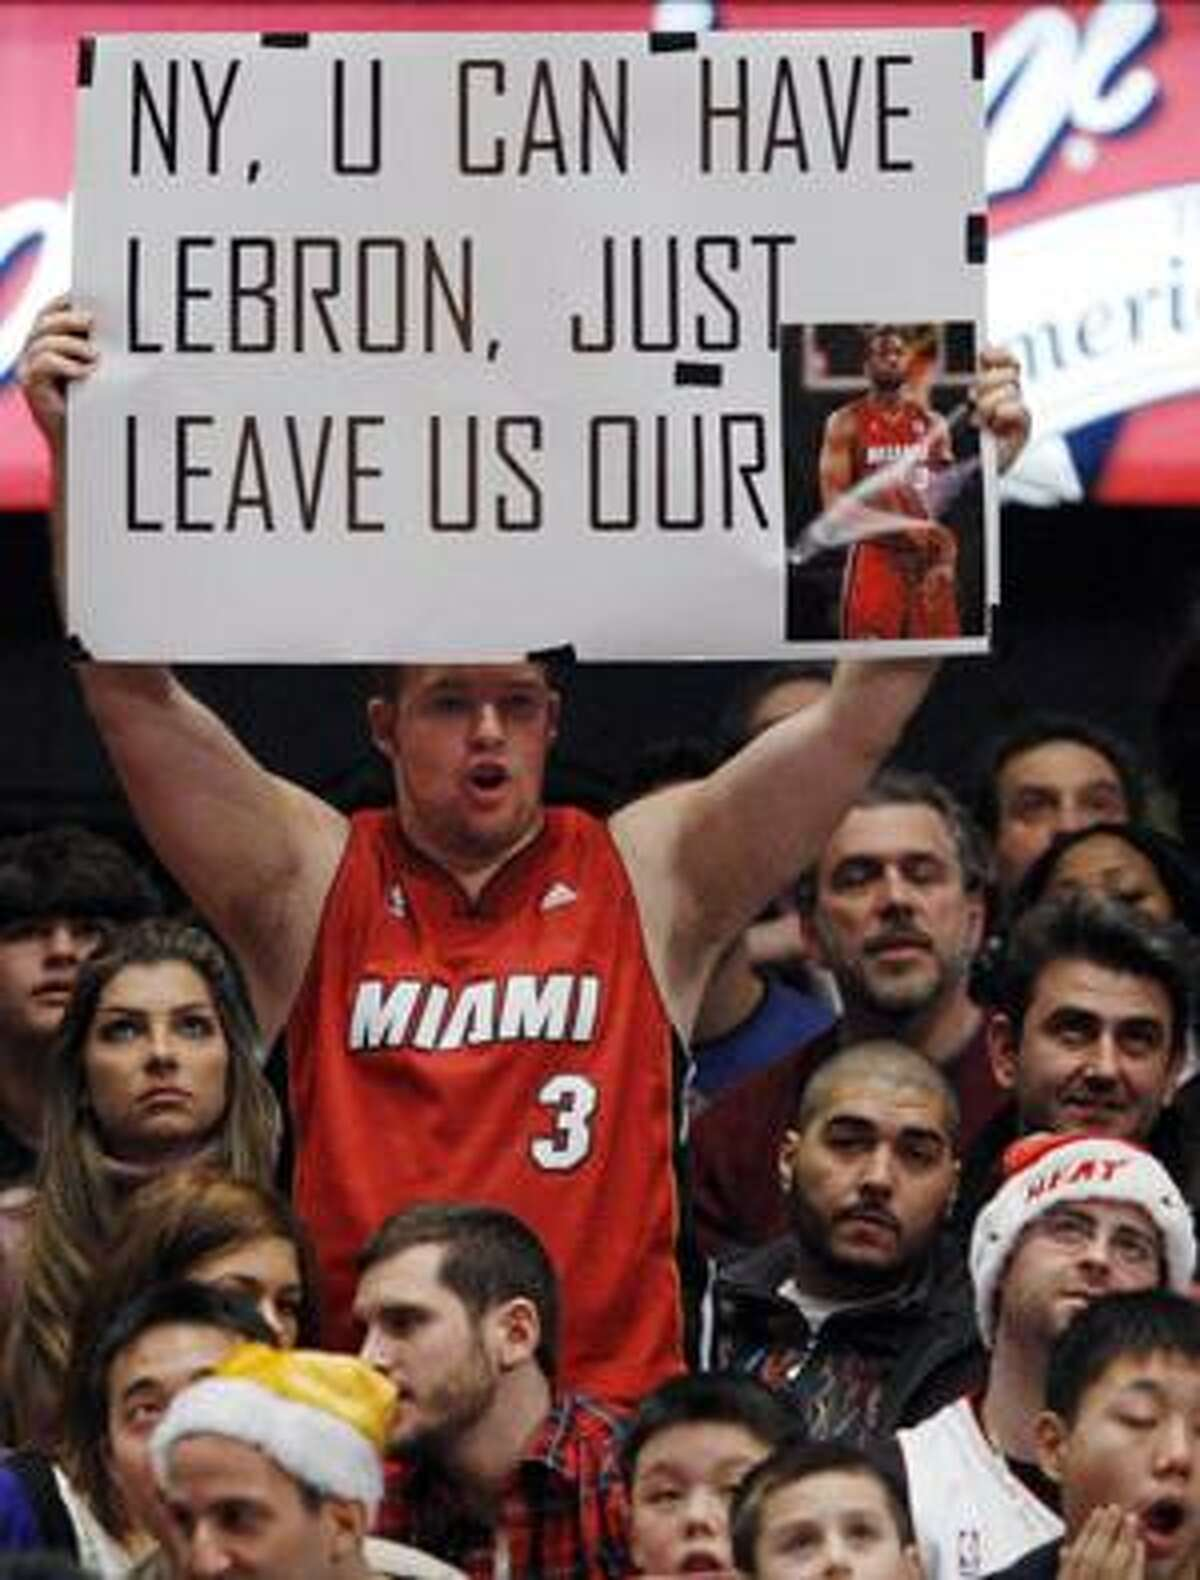 FILE - This Dec. 25, 2009, file photo shows a Miami Heat fan, dressed in a Dwyane Wade jersey, holding up a sign taunting the New York Knicks about their pursuit of LeBron James from the Cleveland Cavaliers while defending Wade in the Heat's 93-87 victory over the Knicks in an NBA basketball game at Madison Square Garden in New York.